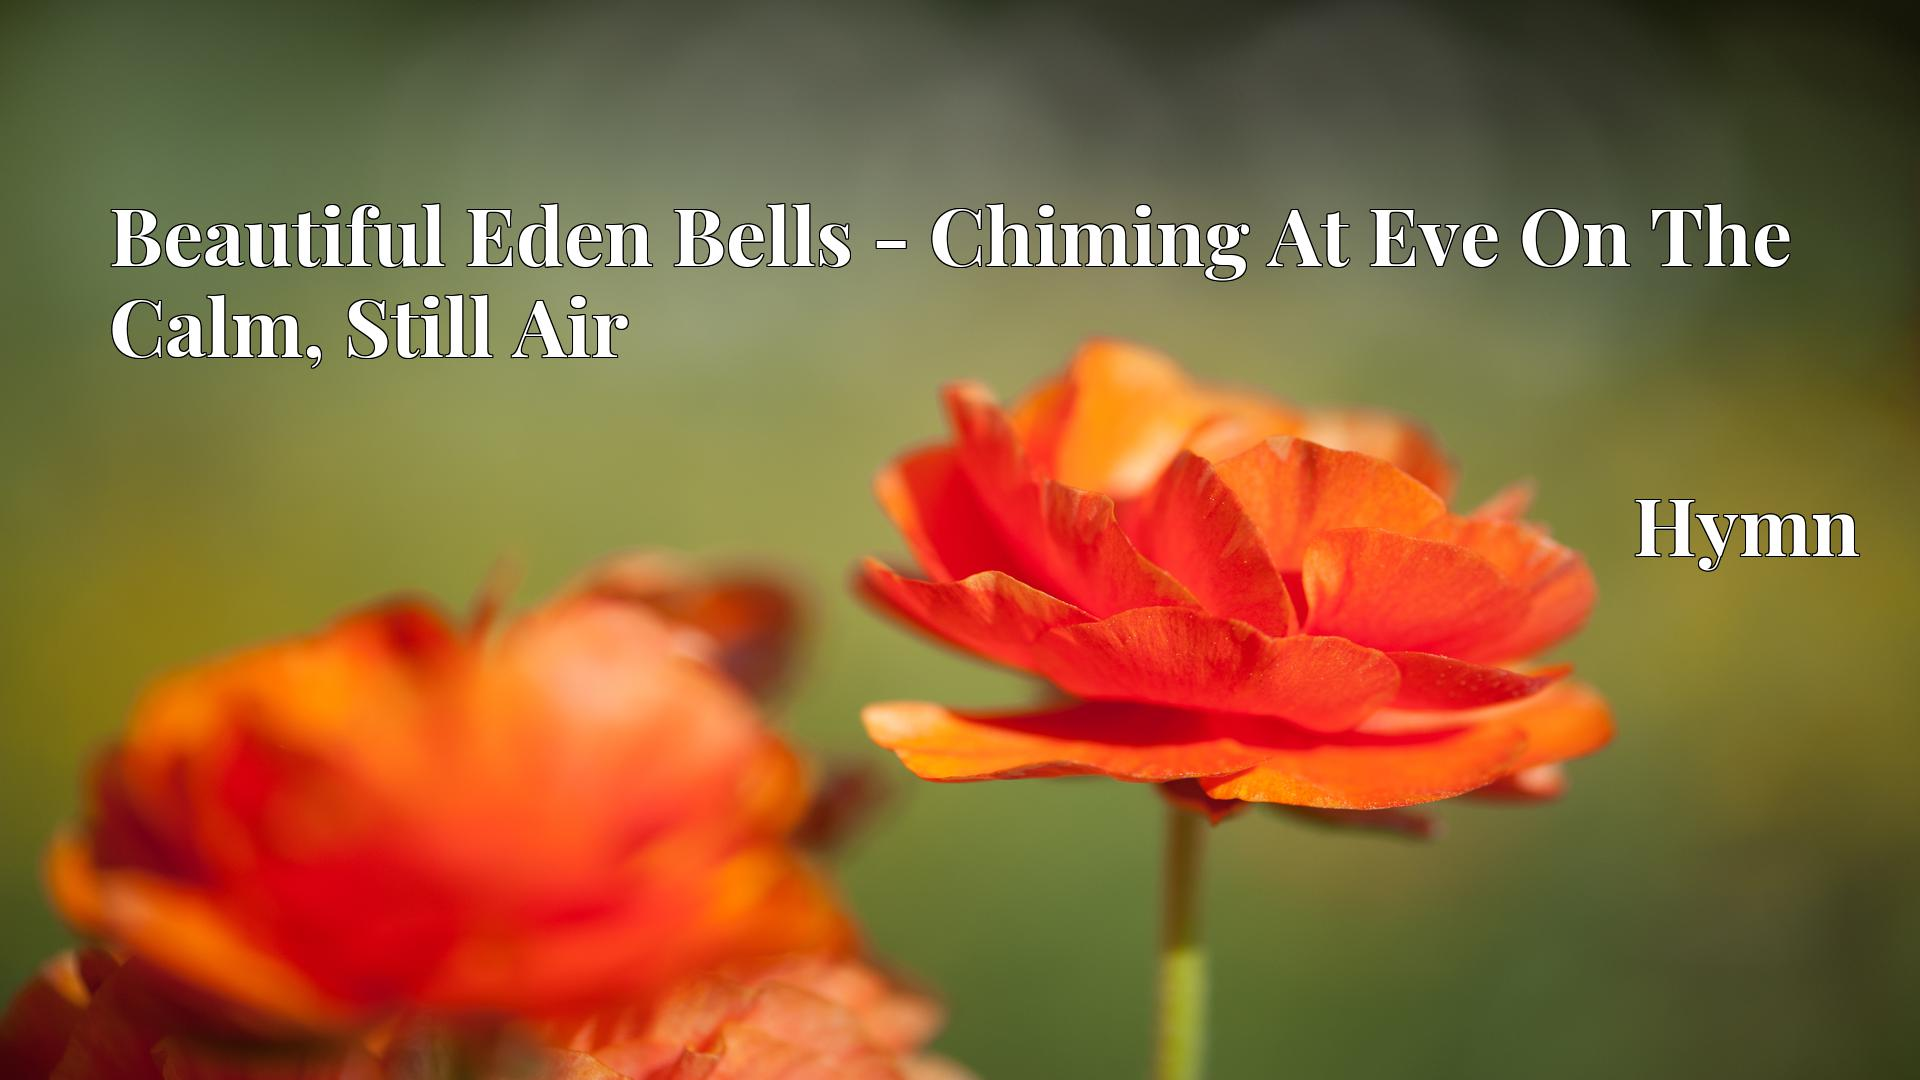 Beautiful Eden Bells - Chiming At Eve On The Calm, Still Air Hymn